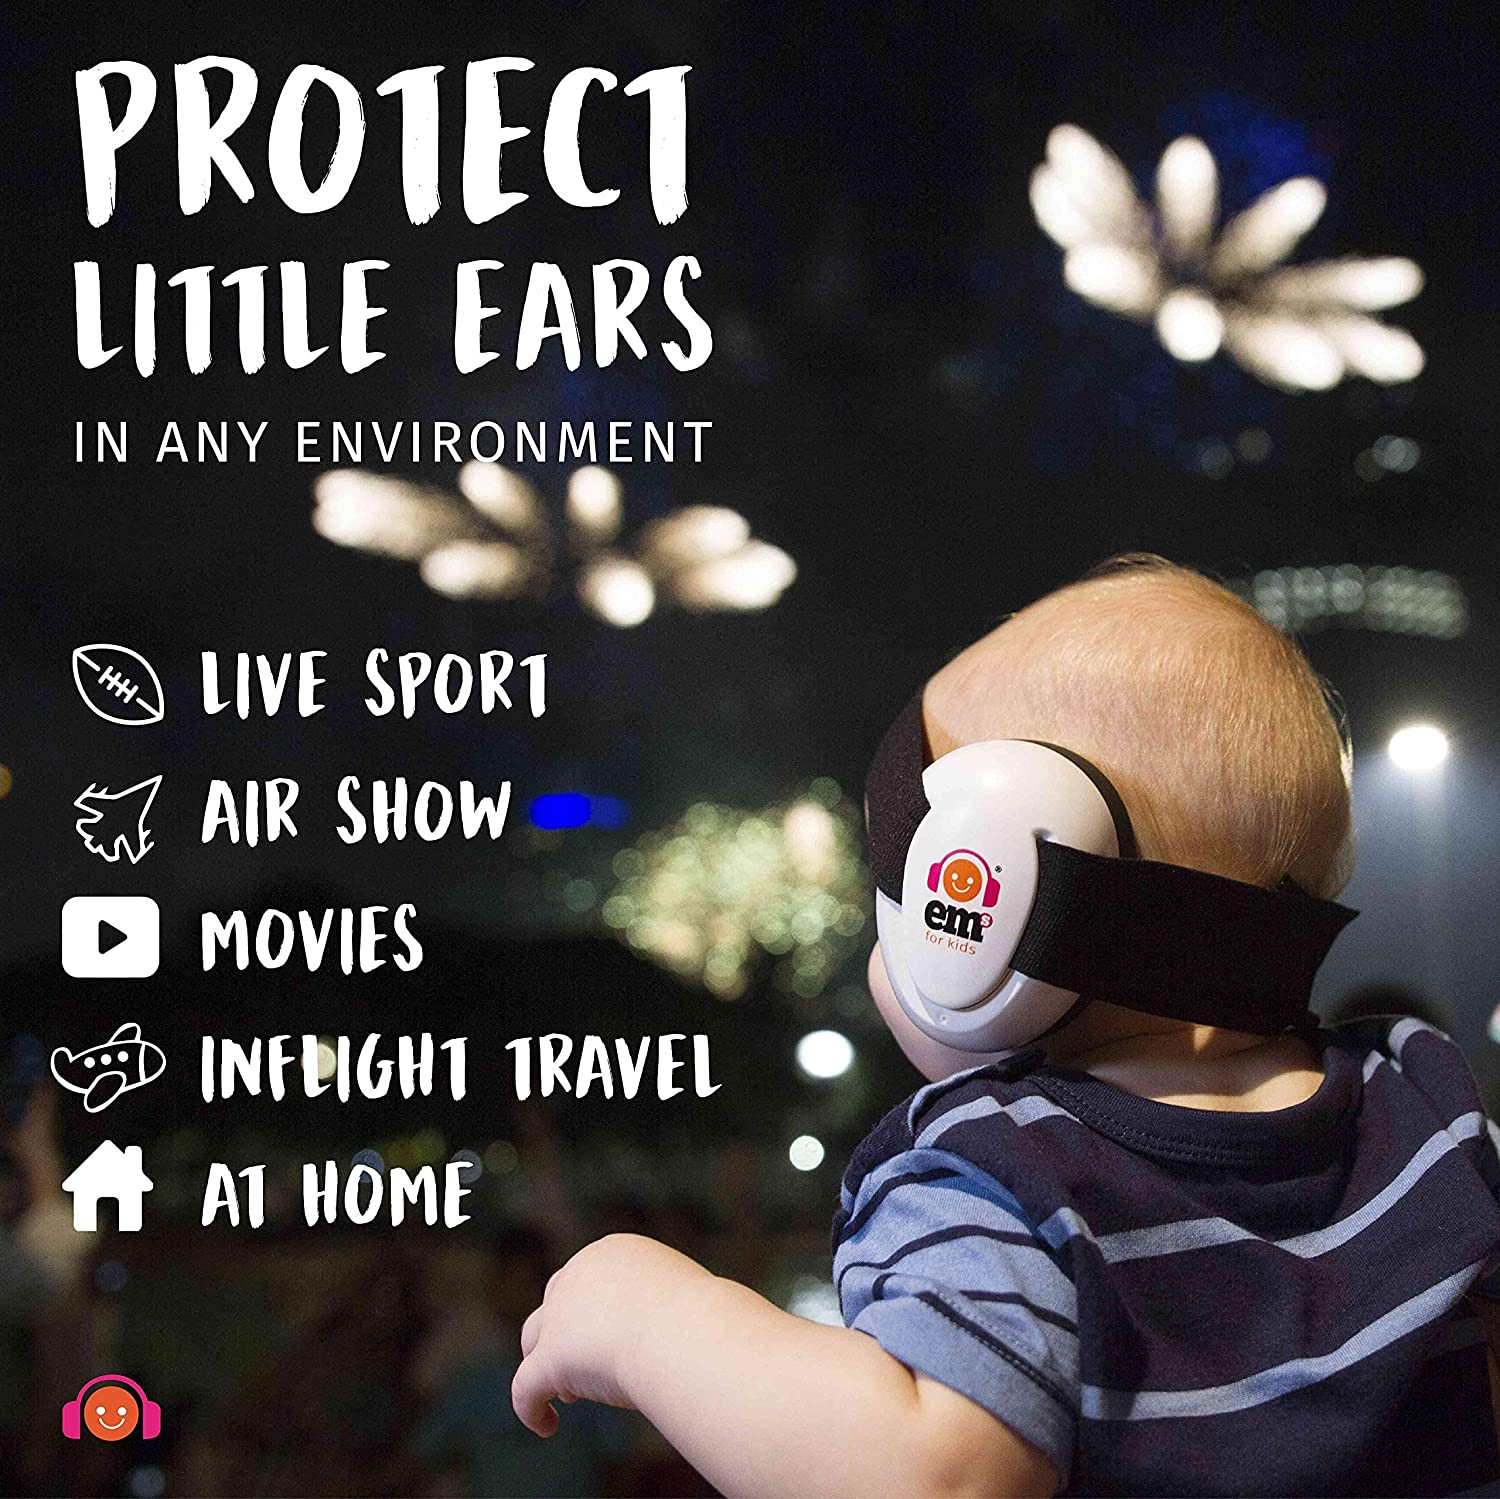 Ems for Kids BABY Earmuffs - White with Pink/White. The original baby earmuffs, now made in the U.S.A! Great for concerts, music festivals, planes, NASCAR, motor racing, power tools and MORE!